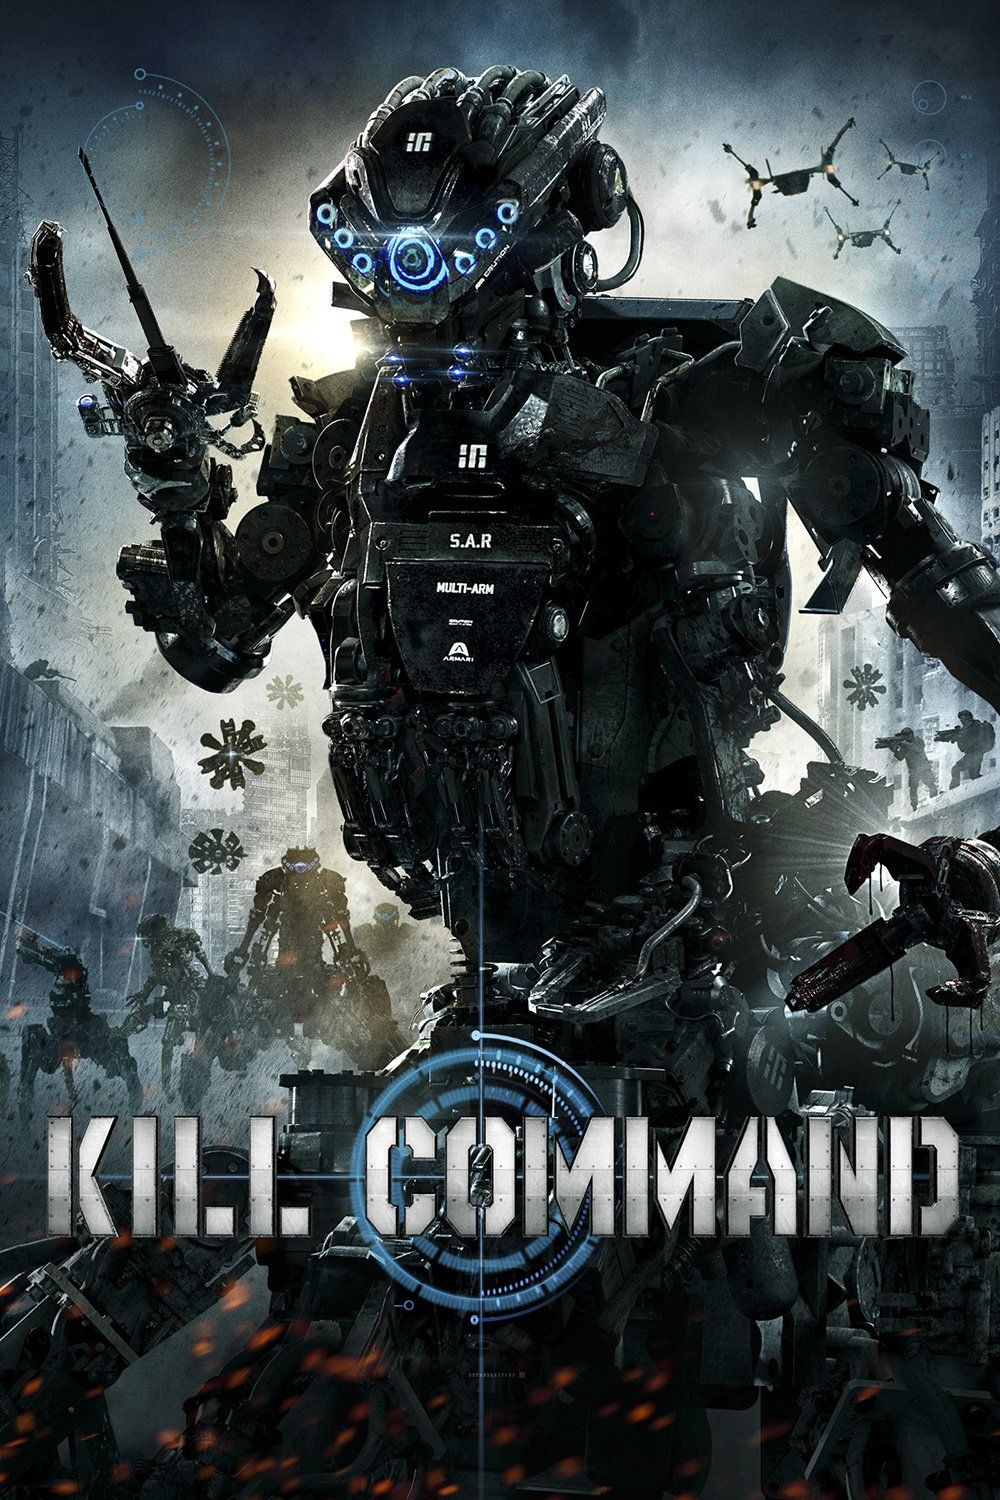 9dbaba951b5d7 Kill Command - Kill Command is a sci-fi action thriller set in a near  future, technology-reliant society that pits man against killing machines.